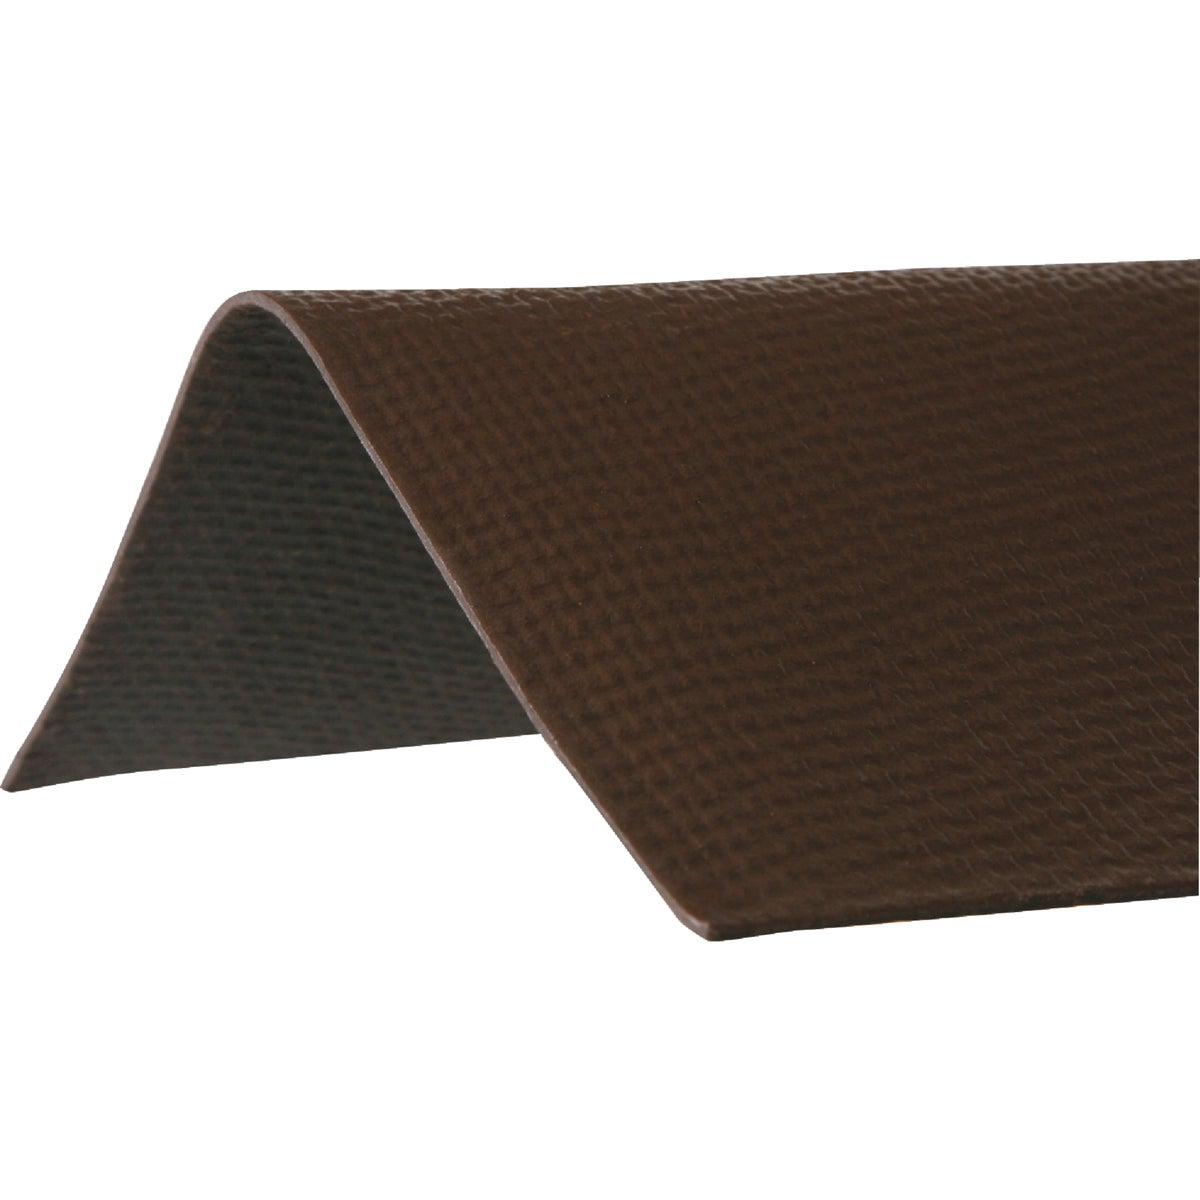 BROWN NARROW RIDGE CAP - 558 by Ofic North America